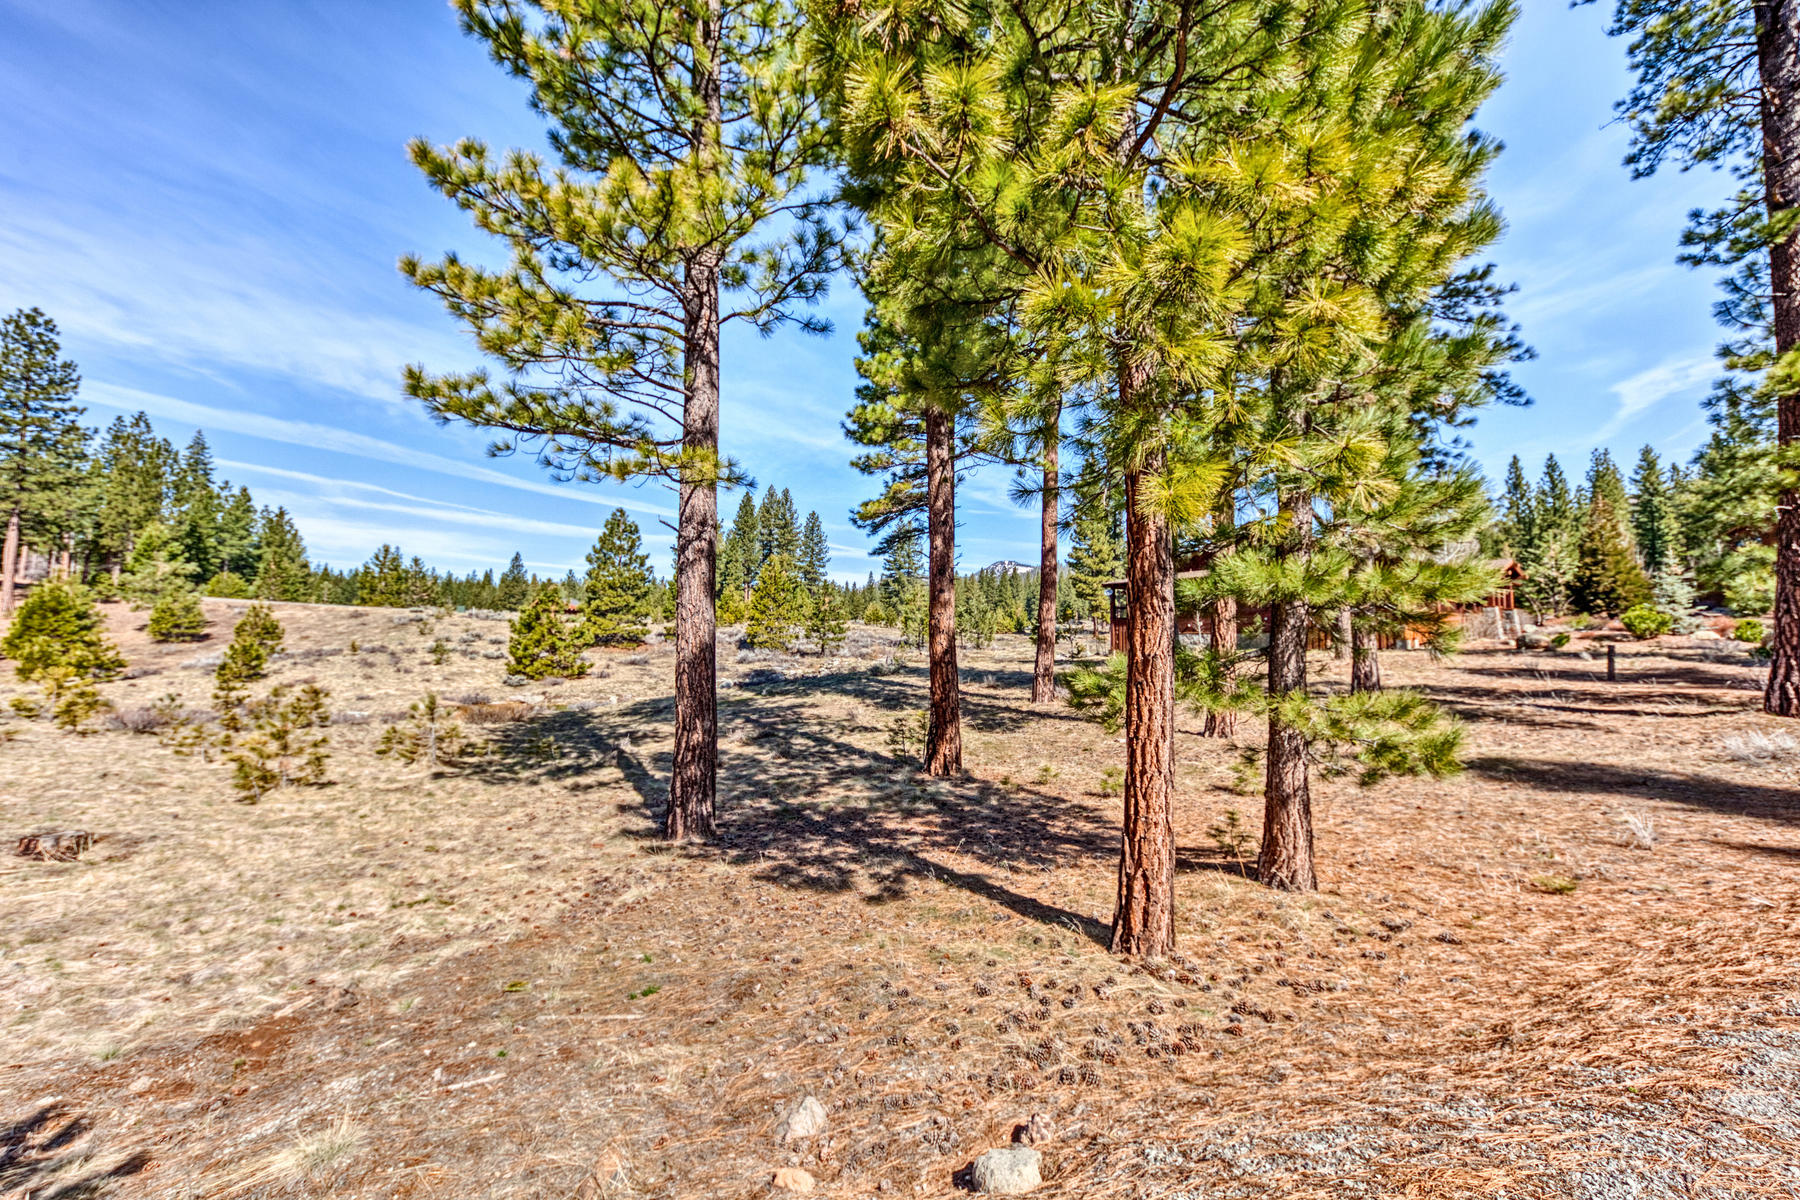 Additional photo for property listing at 56 Blacktail Pointe, Portola, CA 96122 56 Blacktail Pointe Portola, California 96122 United States